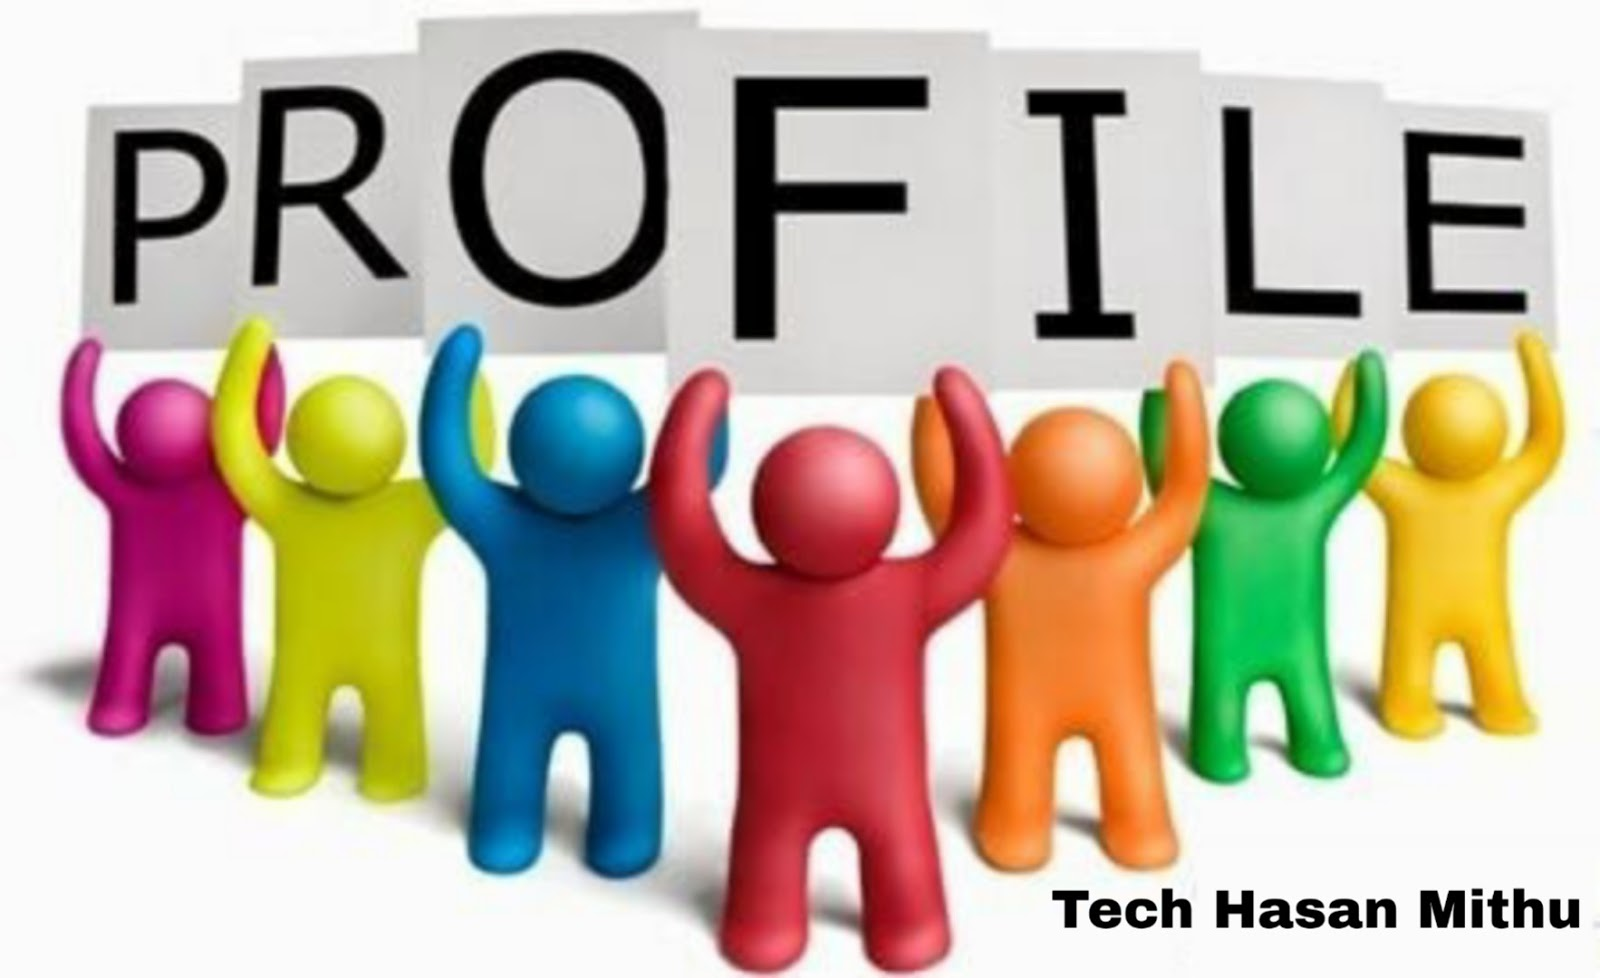 Top {+120} High Quality Profile Creation Sites list in 2019 | Tech